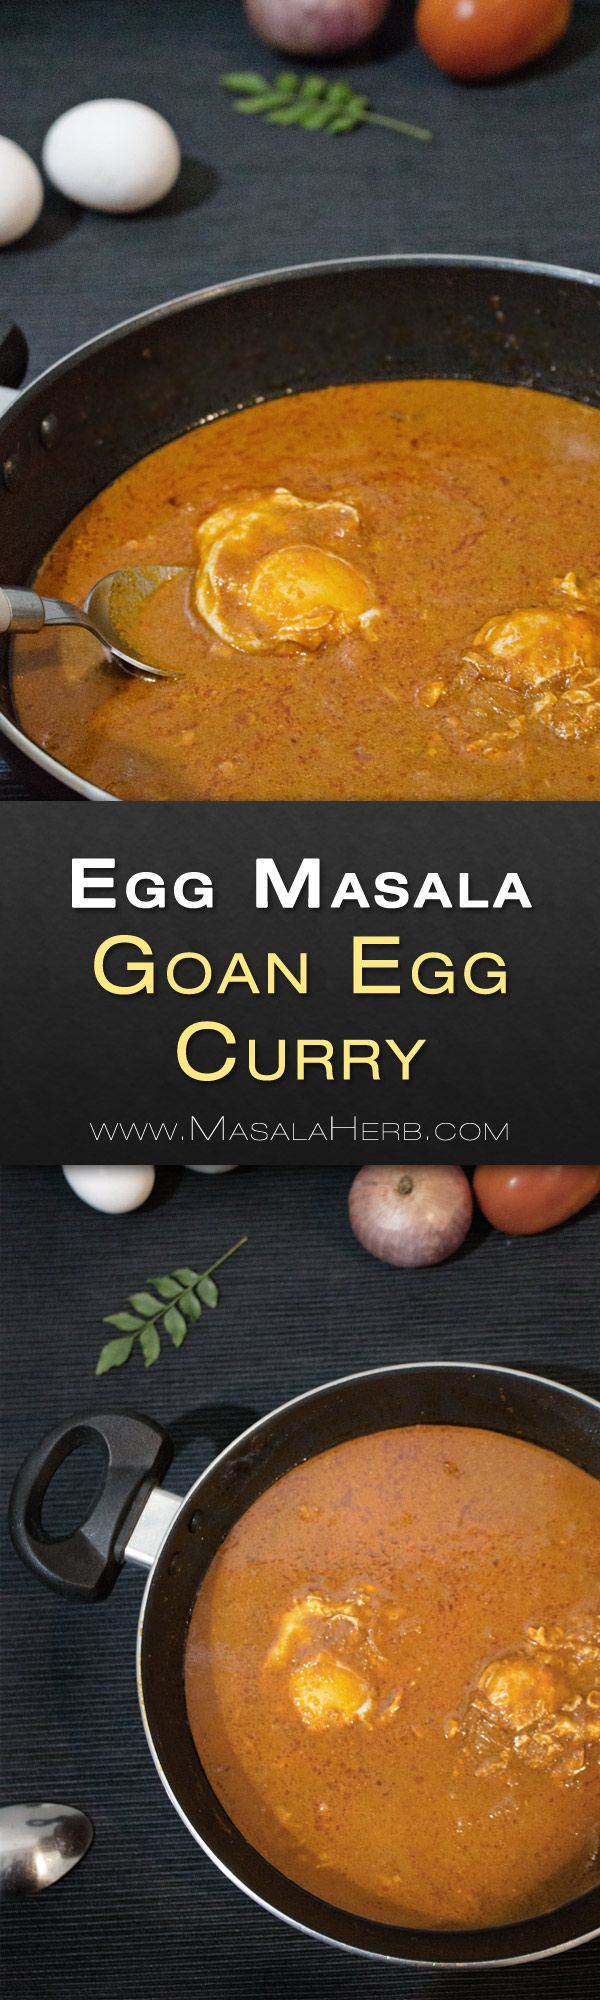 One Pot Egg Masala Recipe - Goan Egg Curry with Coconut - How to make Egg Masala Curry +Video! 20 minute easy to prepare comforting and flavorful curry. tips and instructions on the recipe page www.MasalaHerb.com